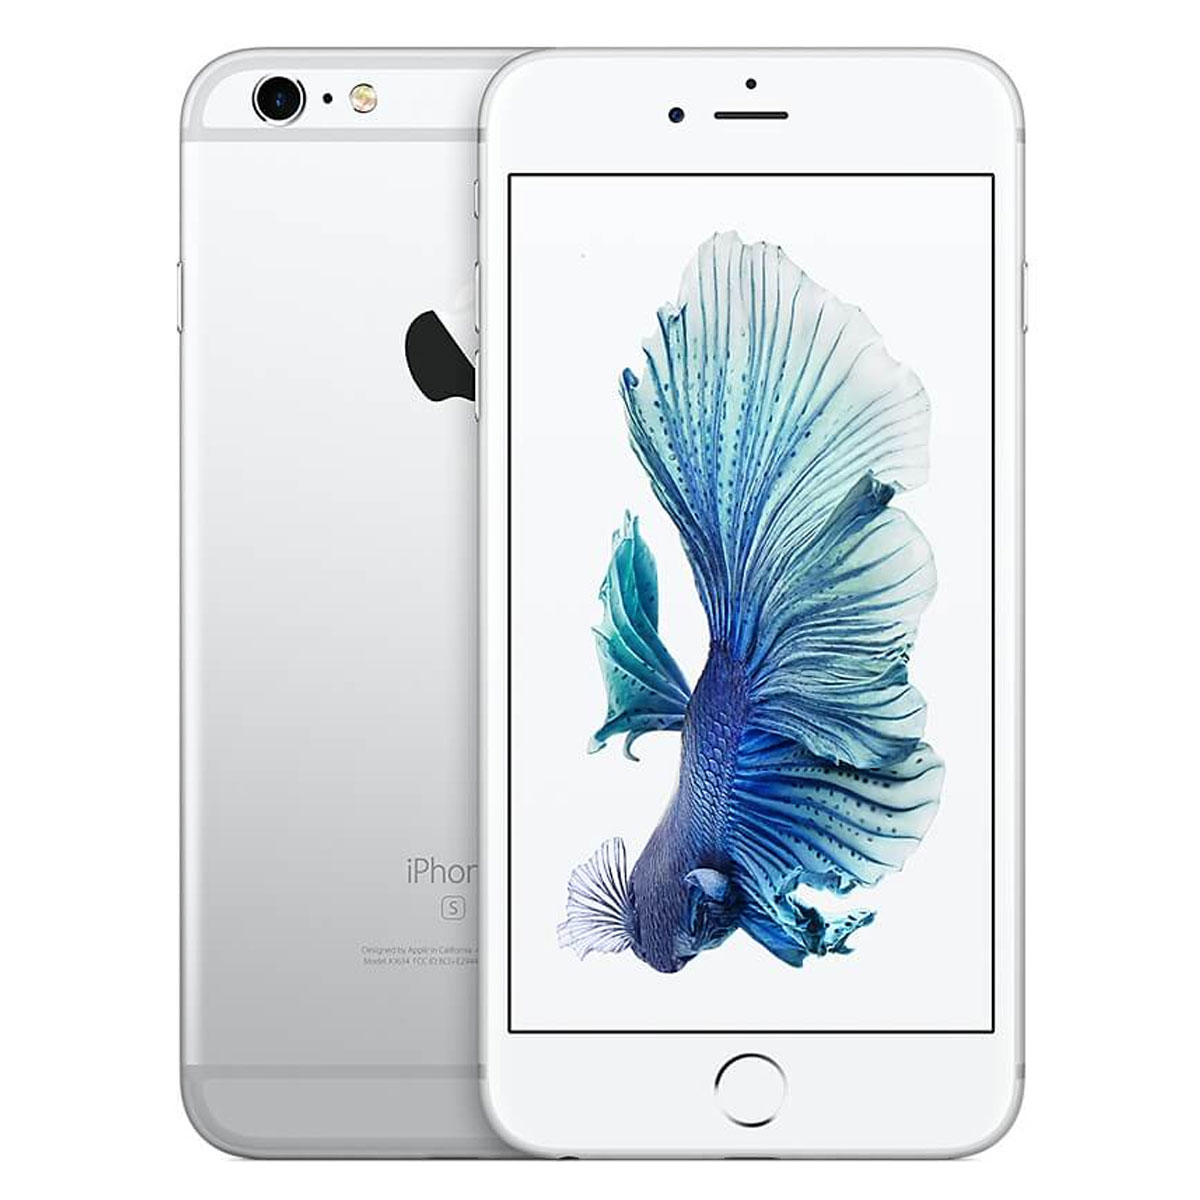 Apple Iphone 6s Price In Pakistan 2020 Priceoye